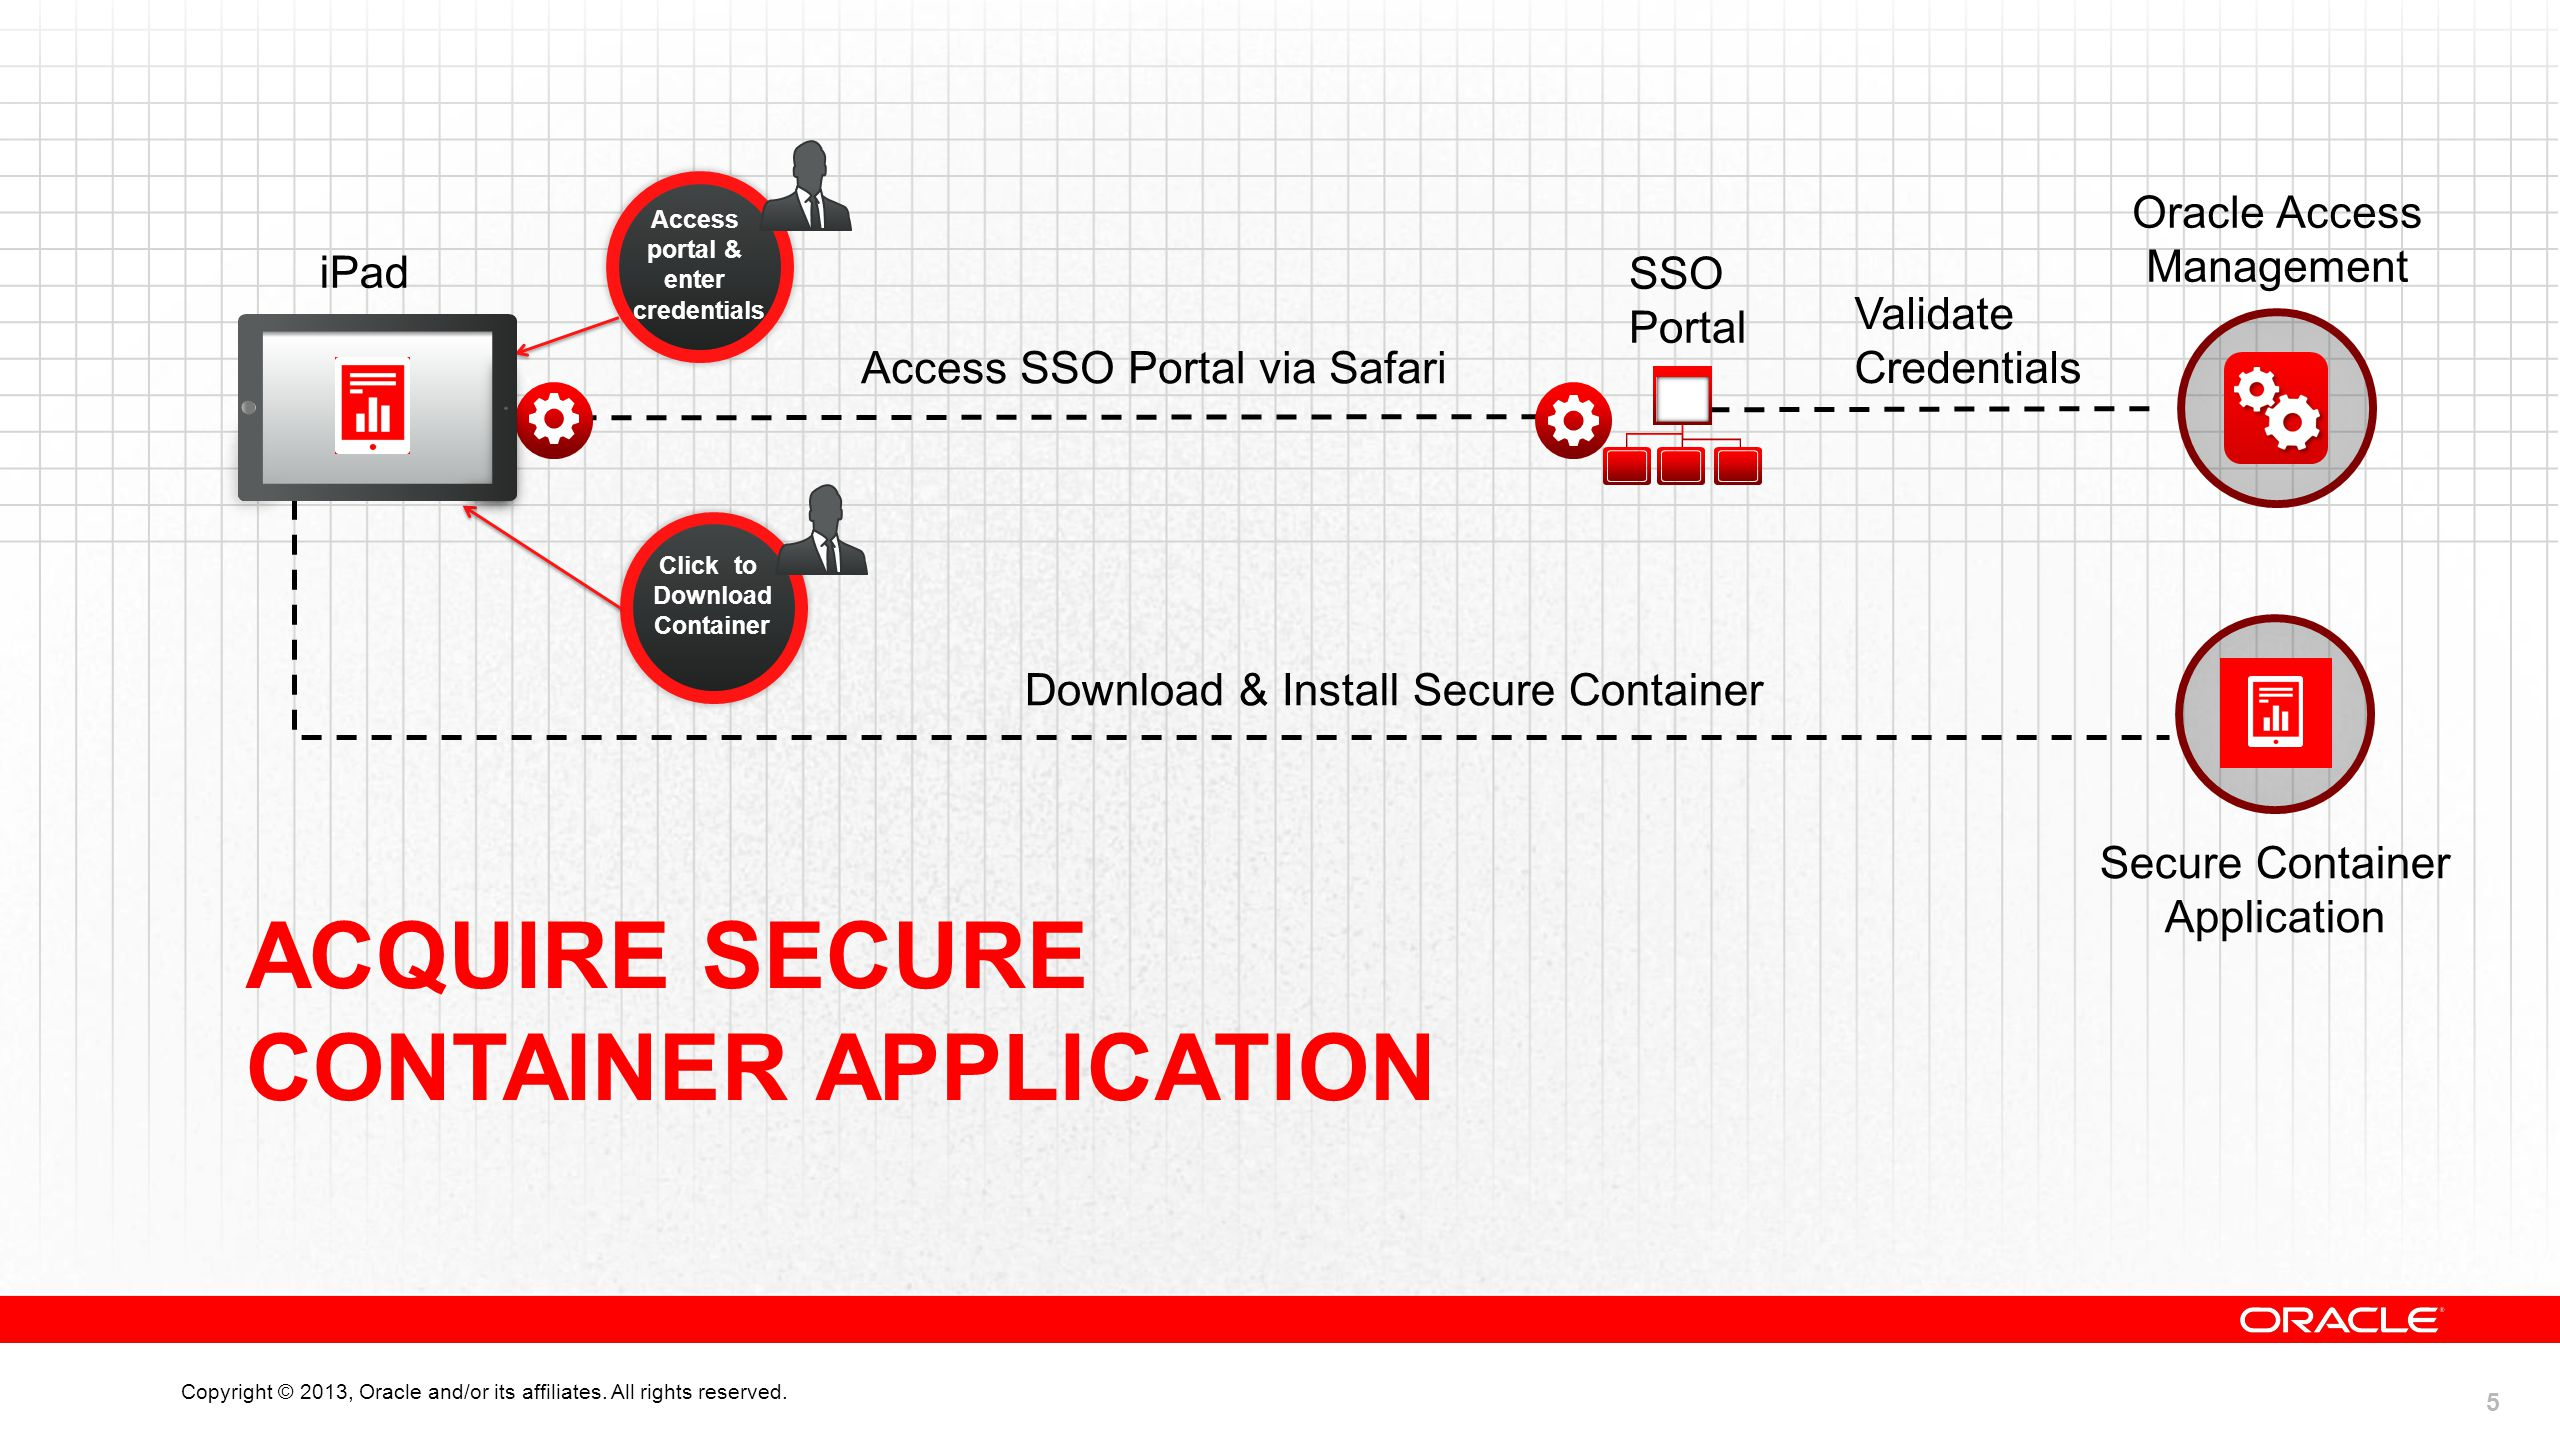 5 Copyright © 2013, Oracle and/or its affiliates. All rights reserved. Access SSO Portal via Safari iPad SSO Portal Access portal & enter credentials